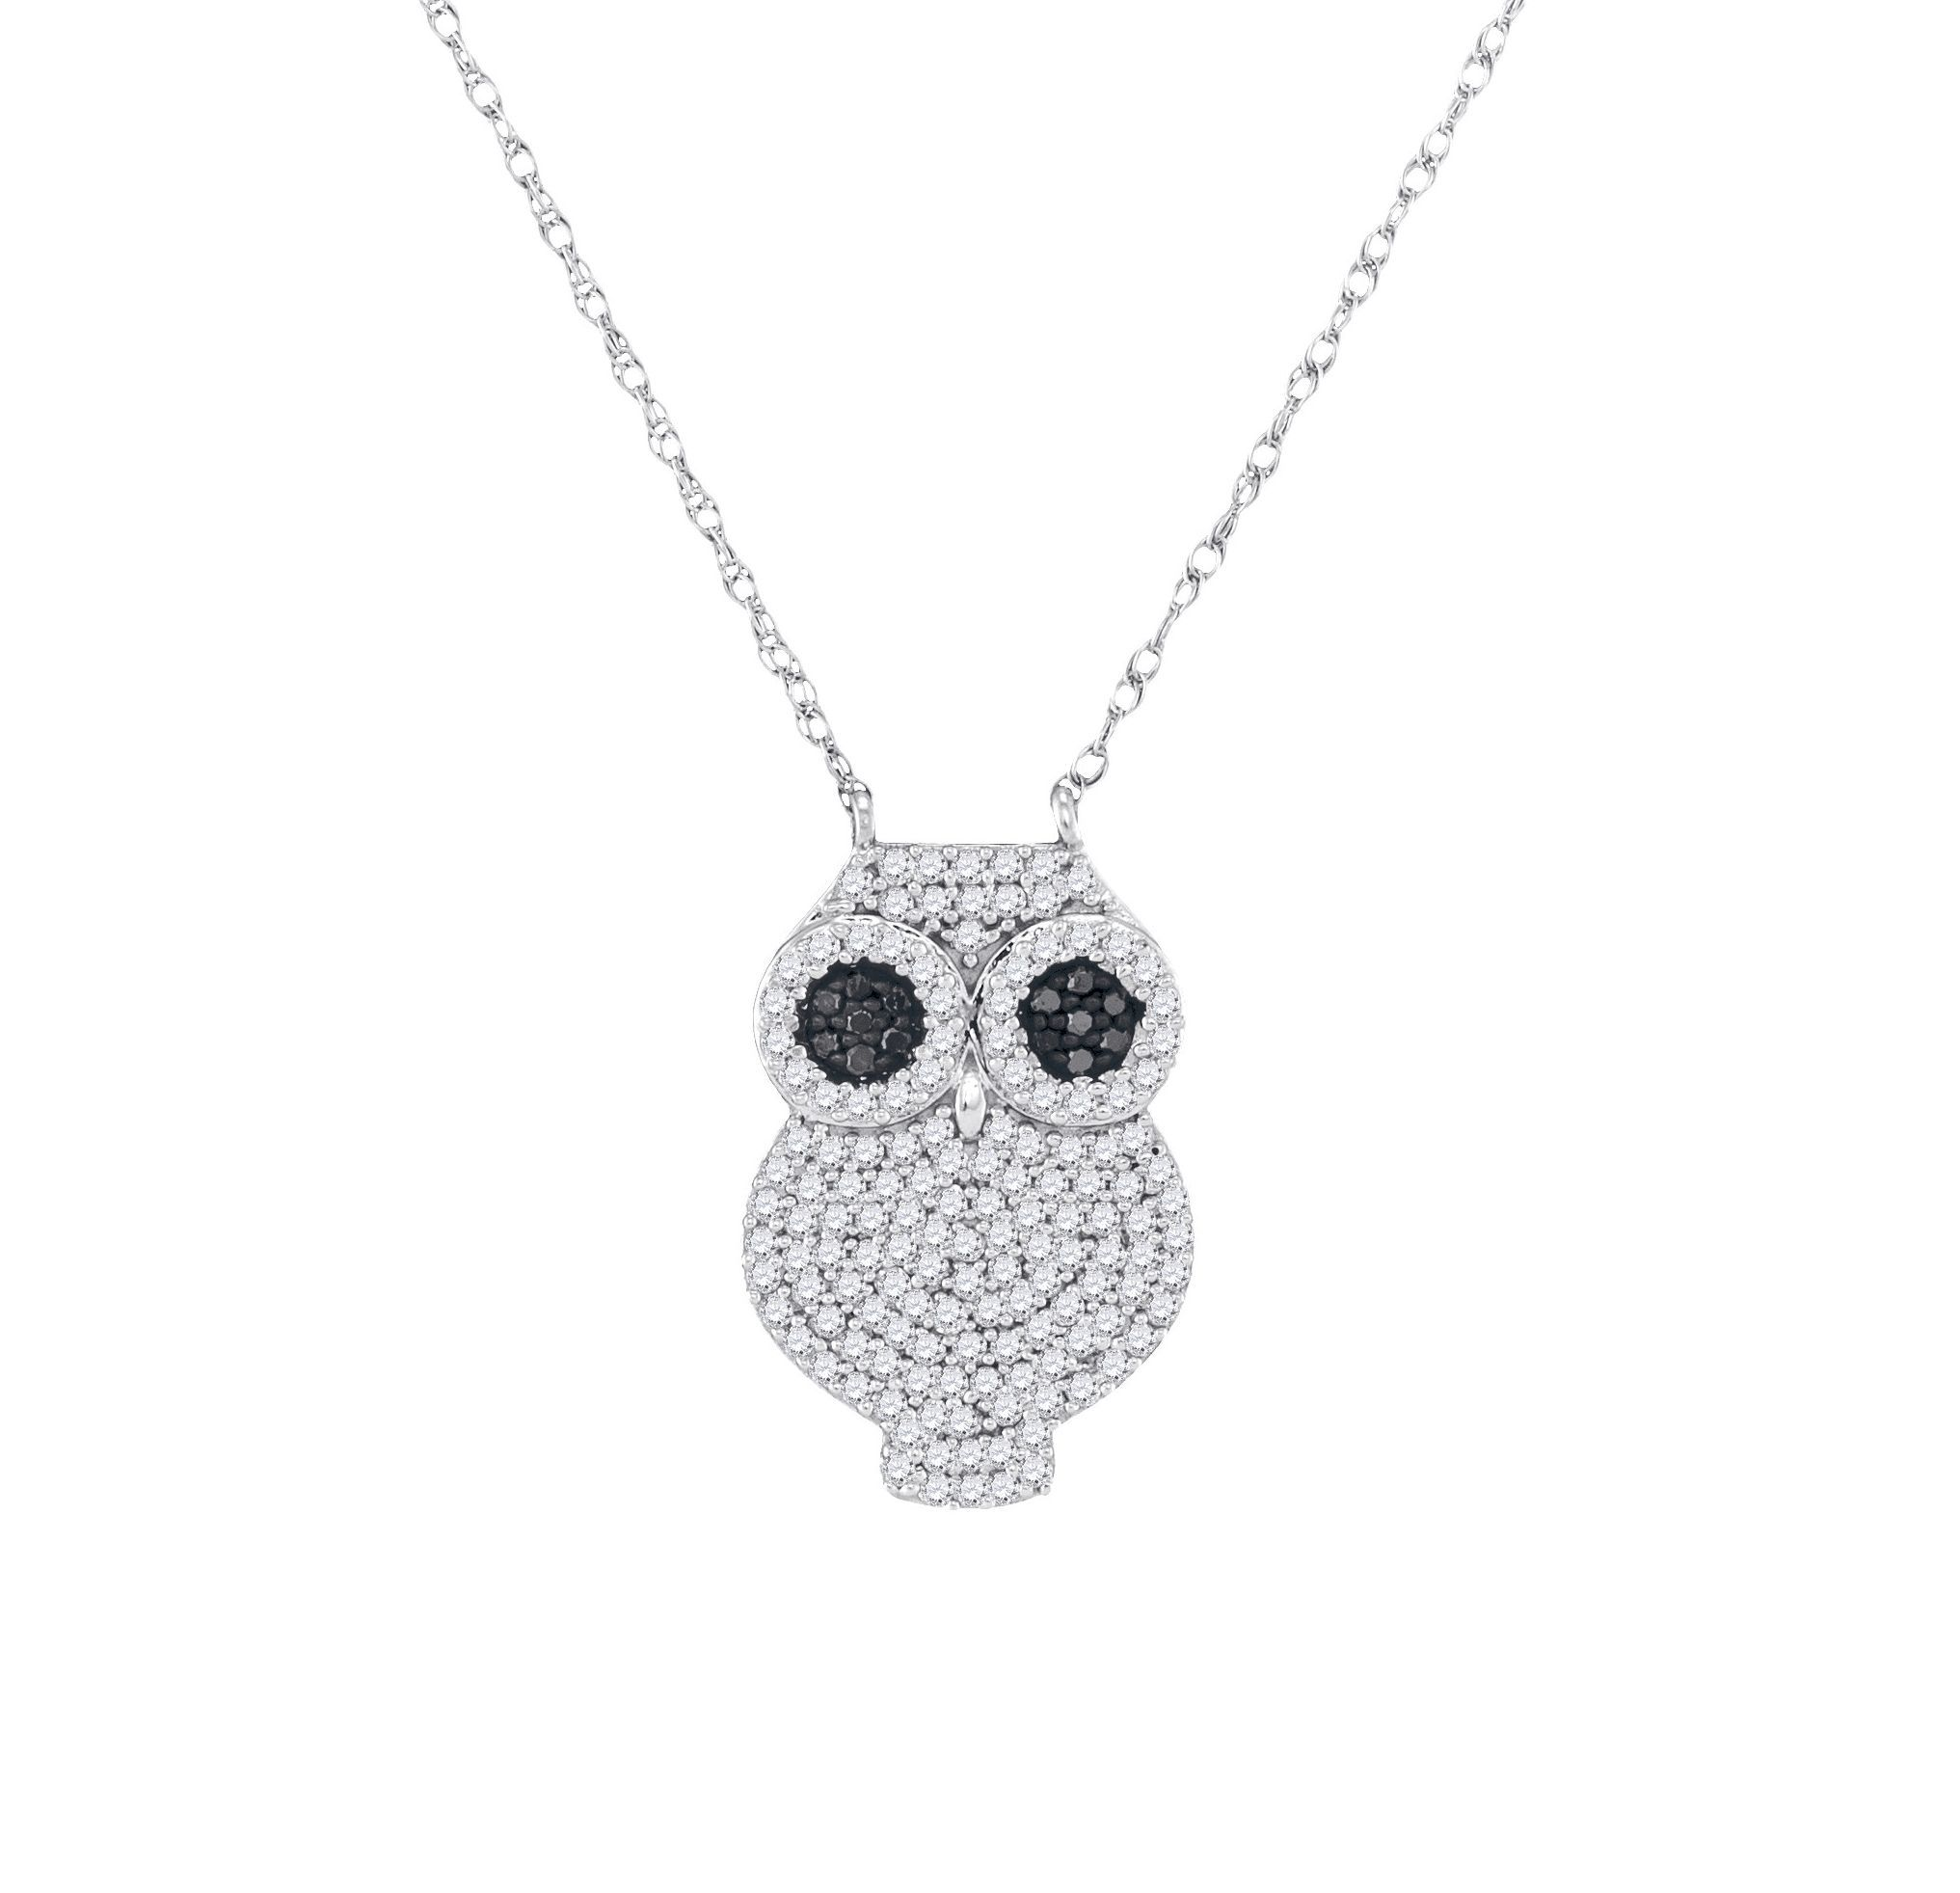 necklaces pendant jewelry dot h stern necklace products diamond enlarged bird rock season